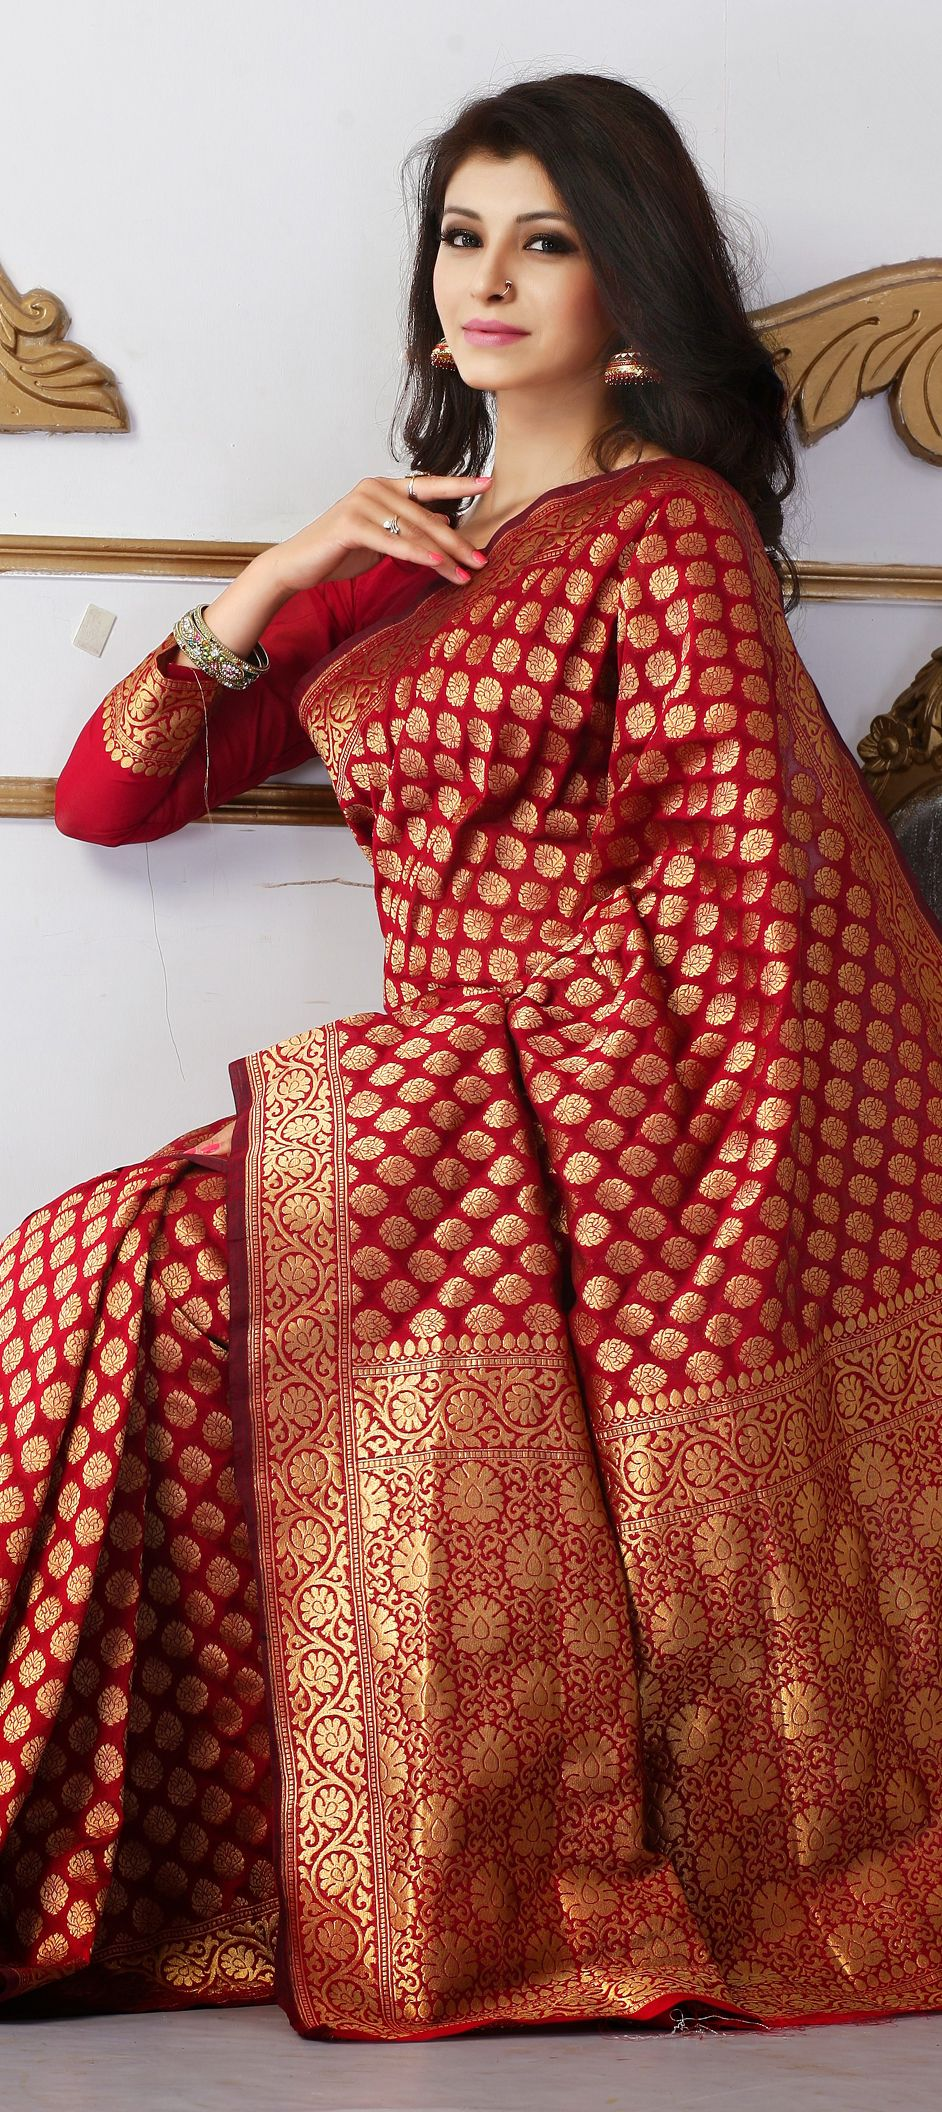 c063175f5c 136856: Red and Maroon color family Party Wear Sarees with matching  unstitched blouse.